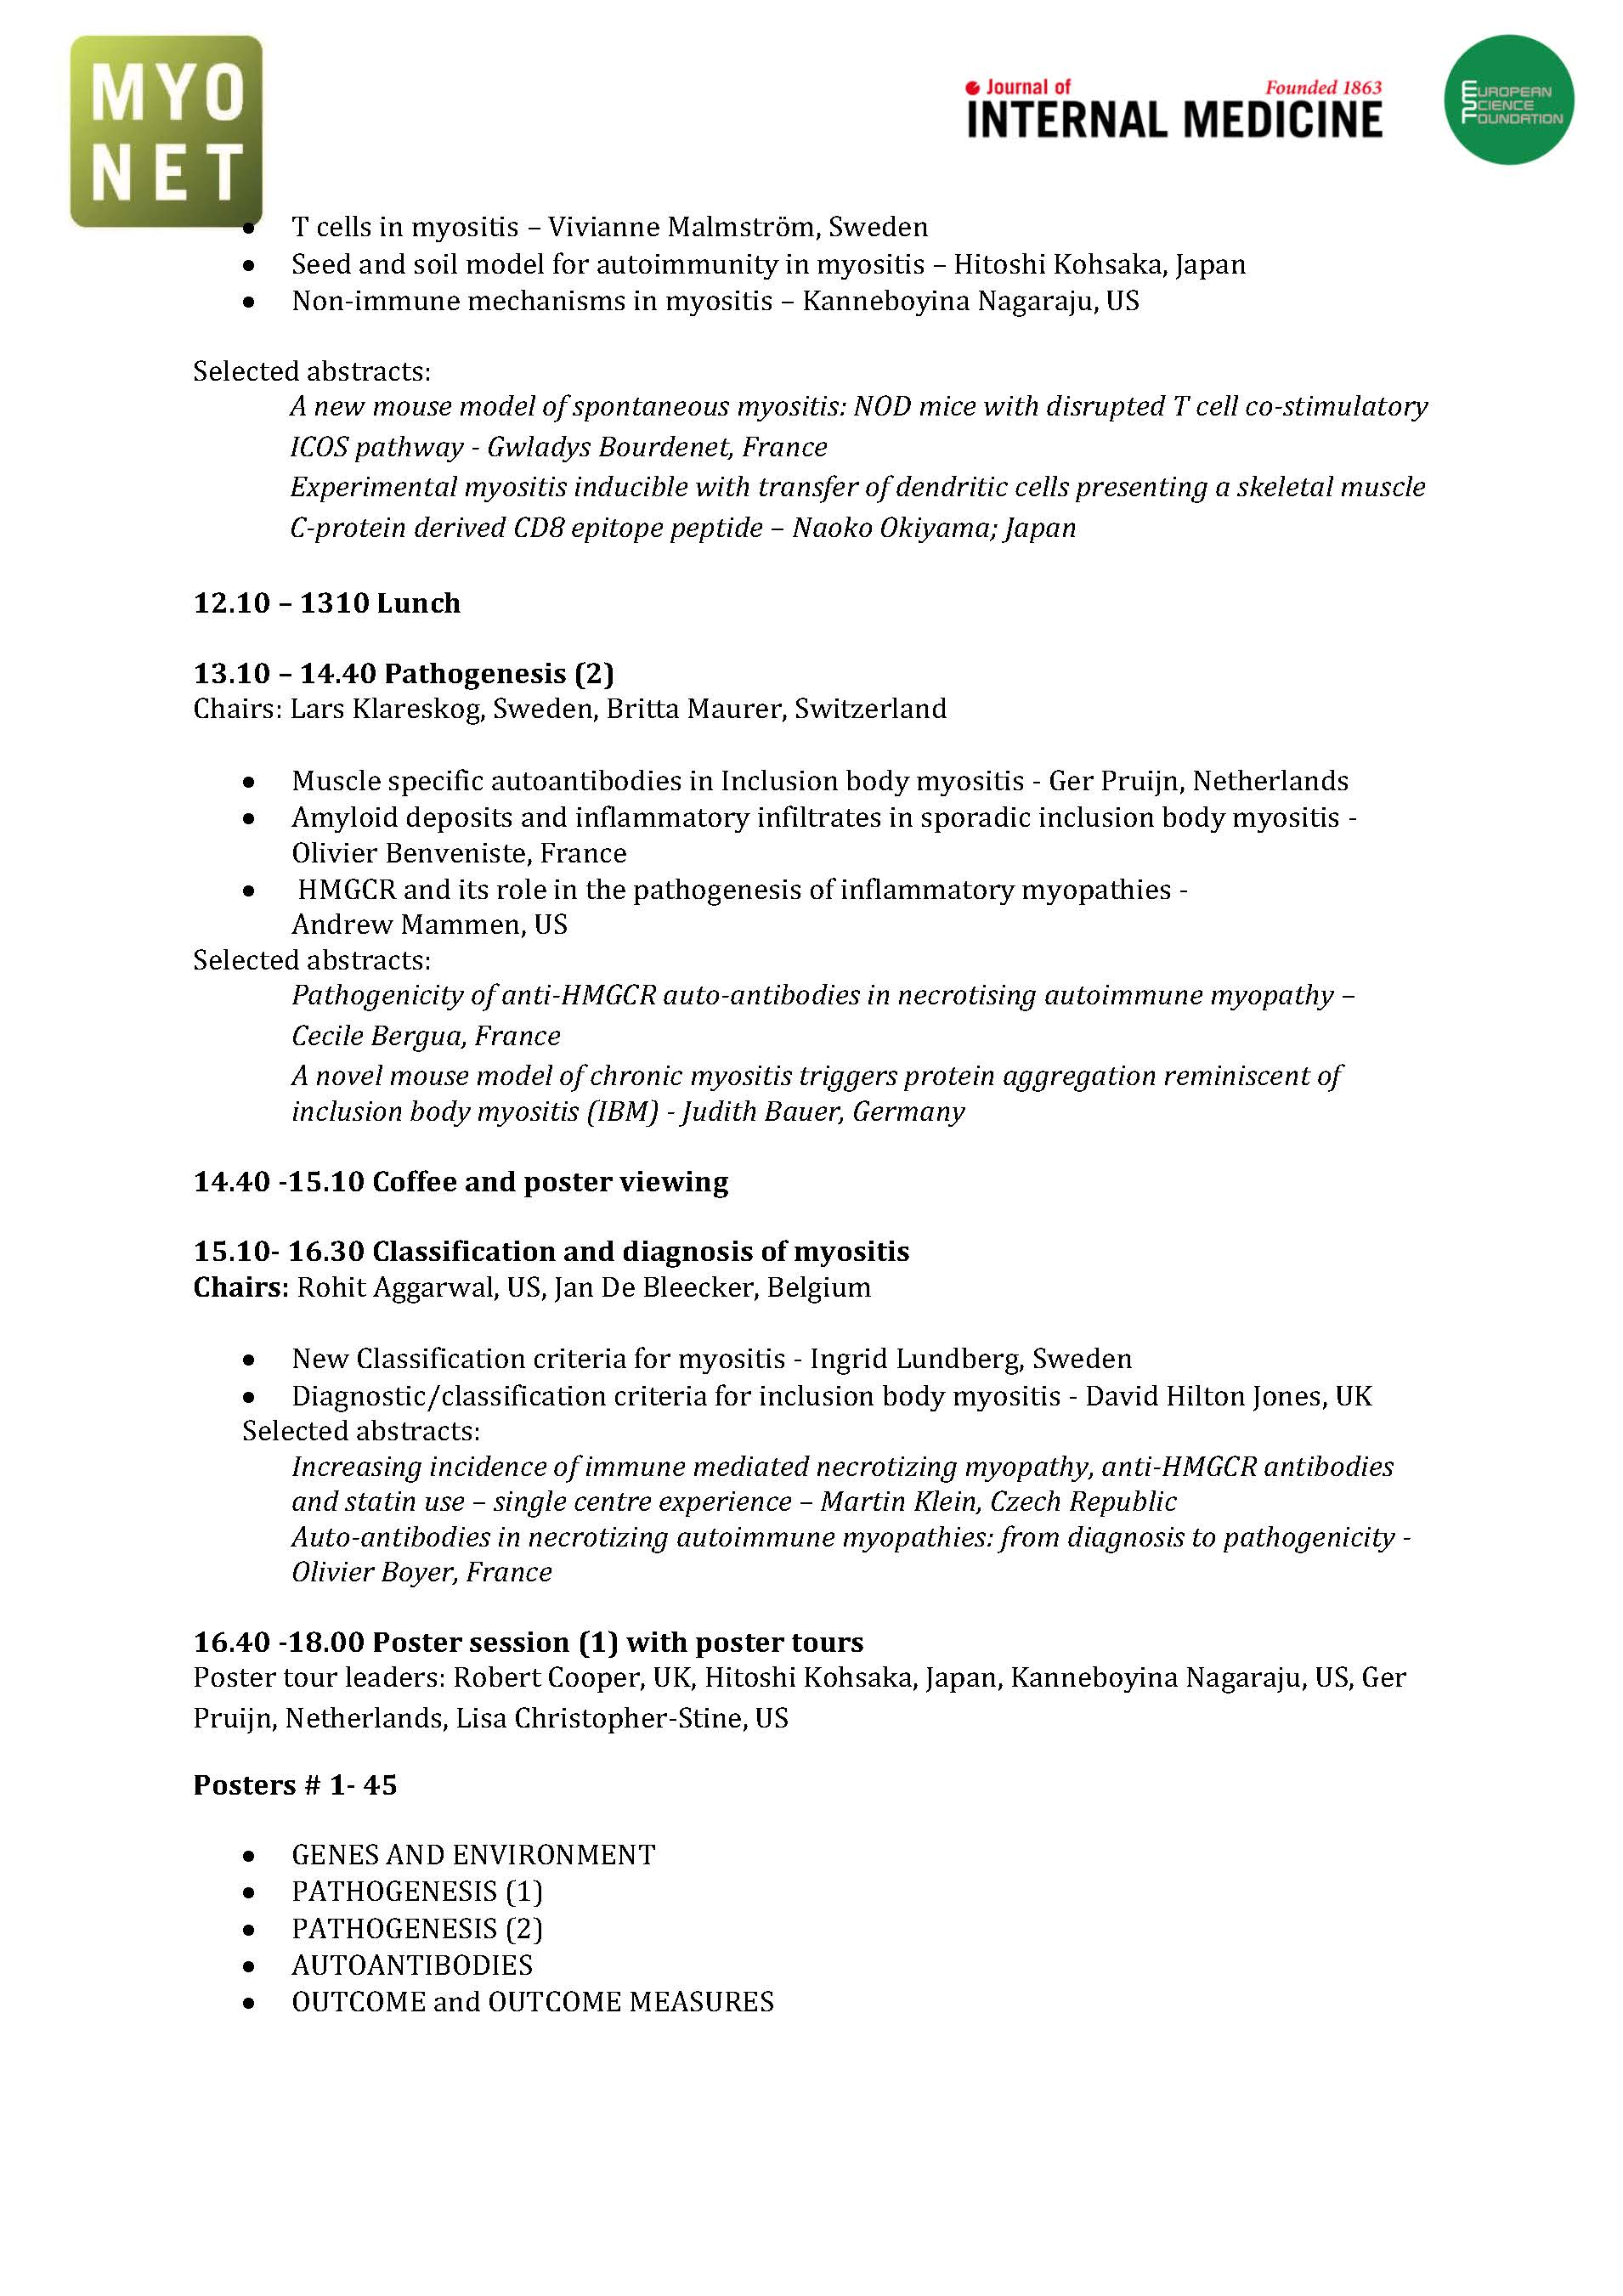 Updated program 2015 conf_150407_corrected_Sida_2